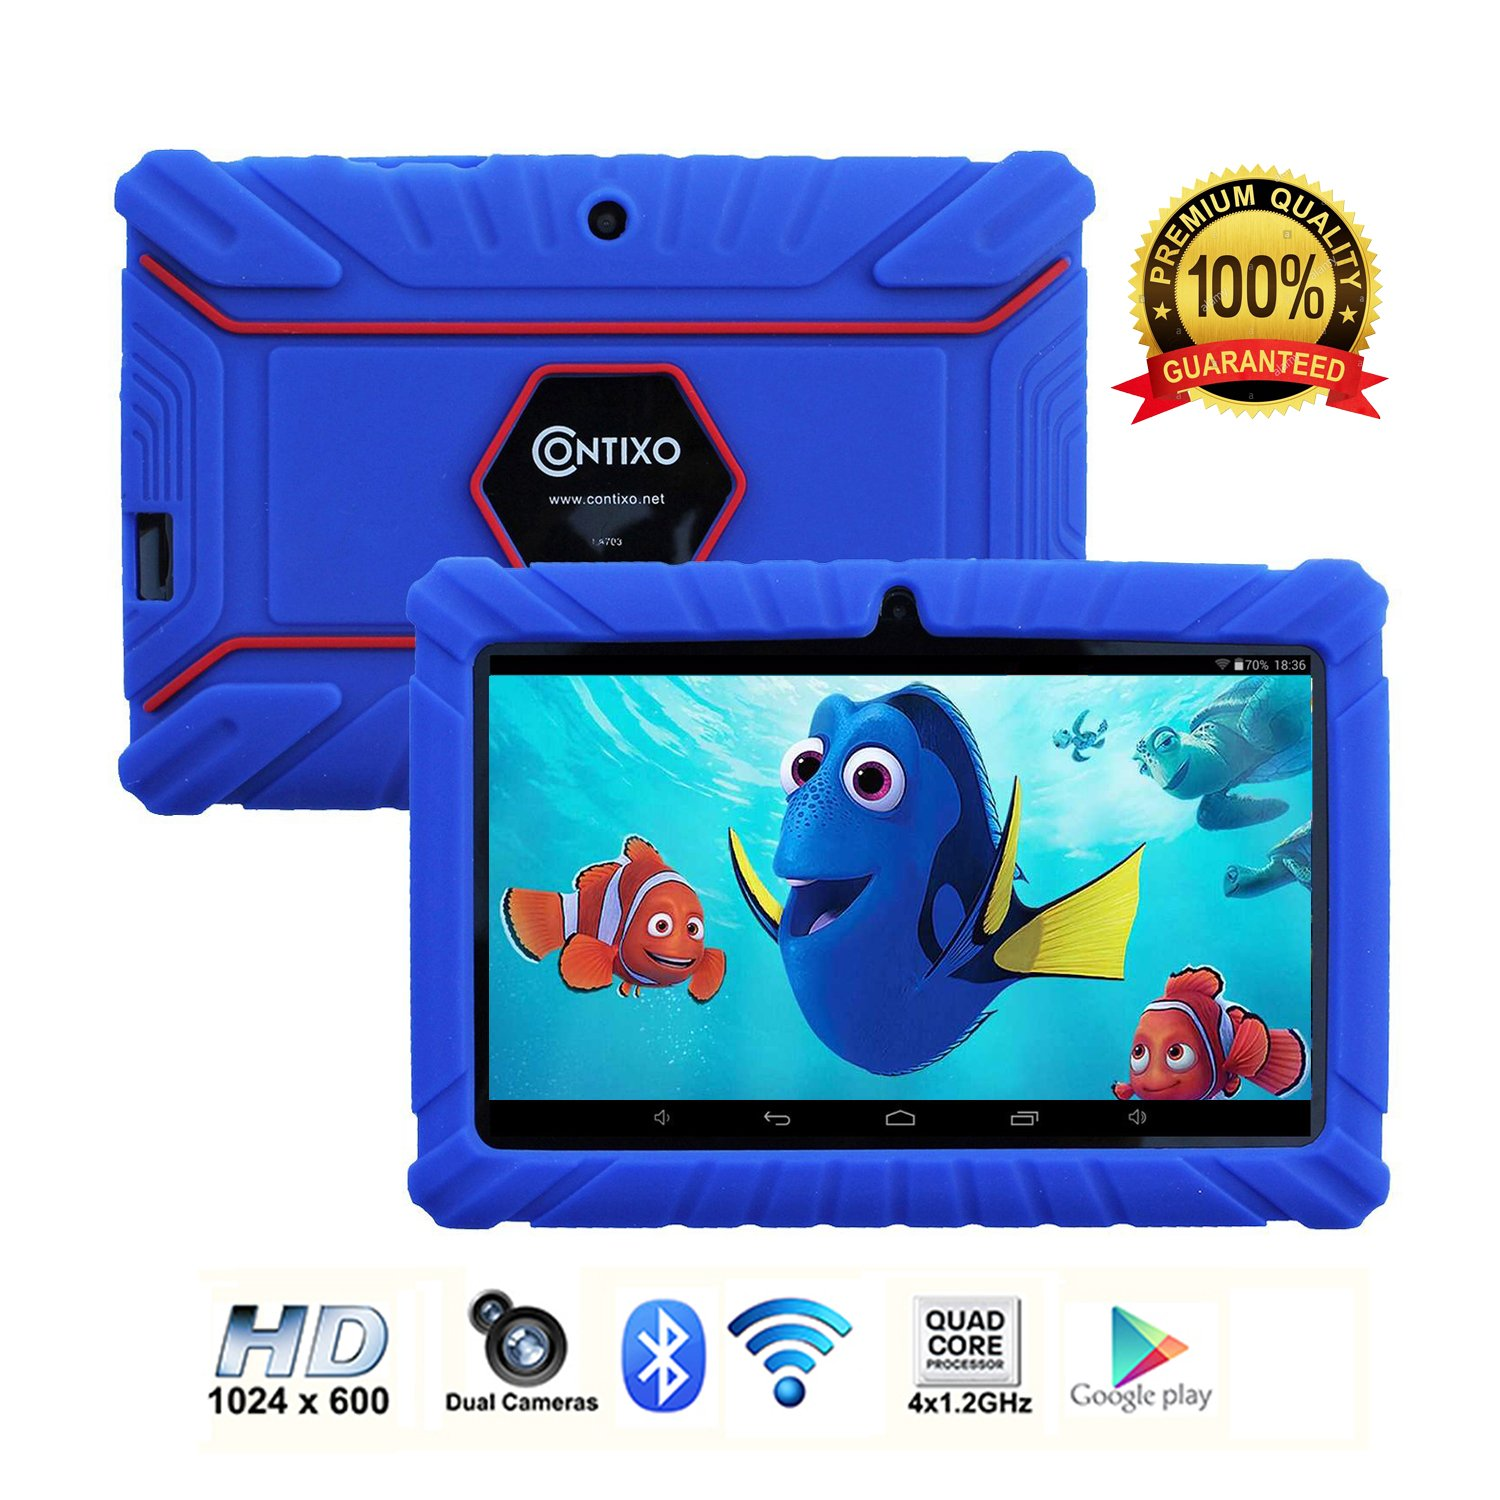 Contixo Kids Tablet K2 | 7'' Display Android 6.0 Bluetooth WiFi Camera Parental Control for Children Infant Toddlers w/ Free Tablet Case (Dark Blue) by Contixo